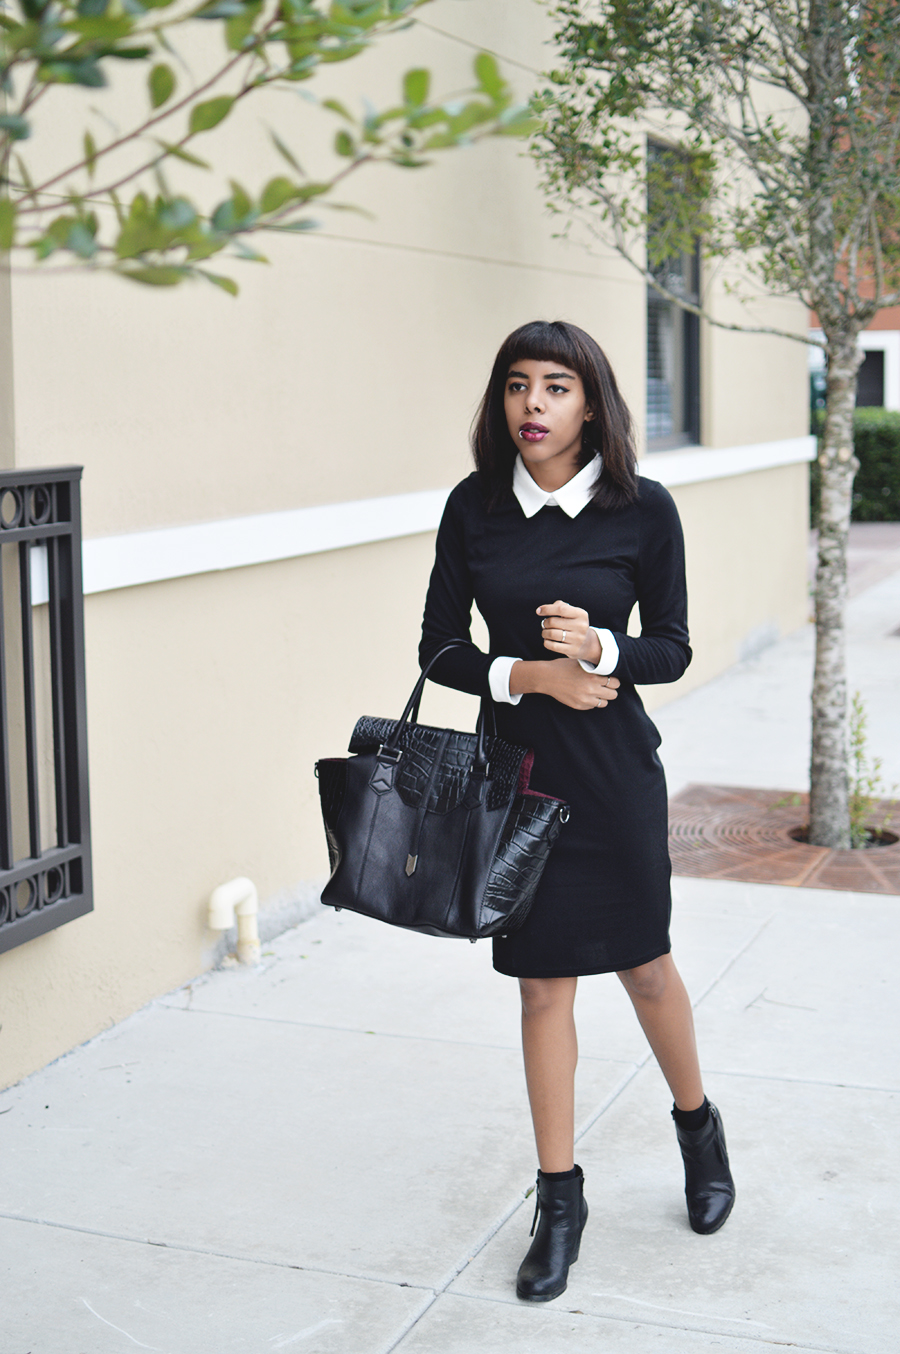 Minimalist Indie Fashion Blogger Anais Alexandre of Down to Stars in a Zara dress with a Treesje bag and boots